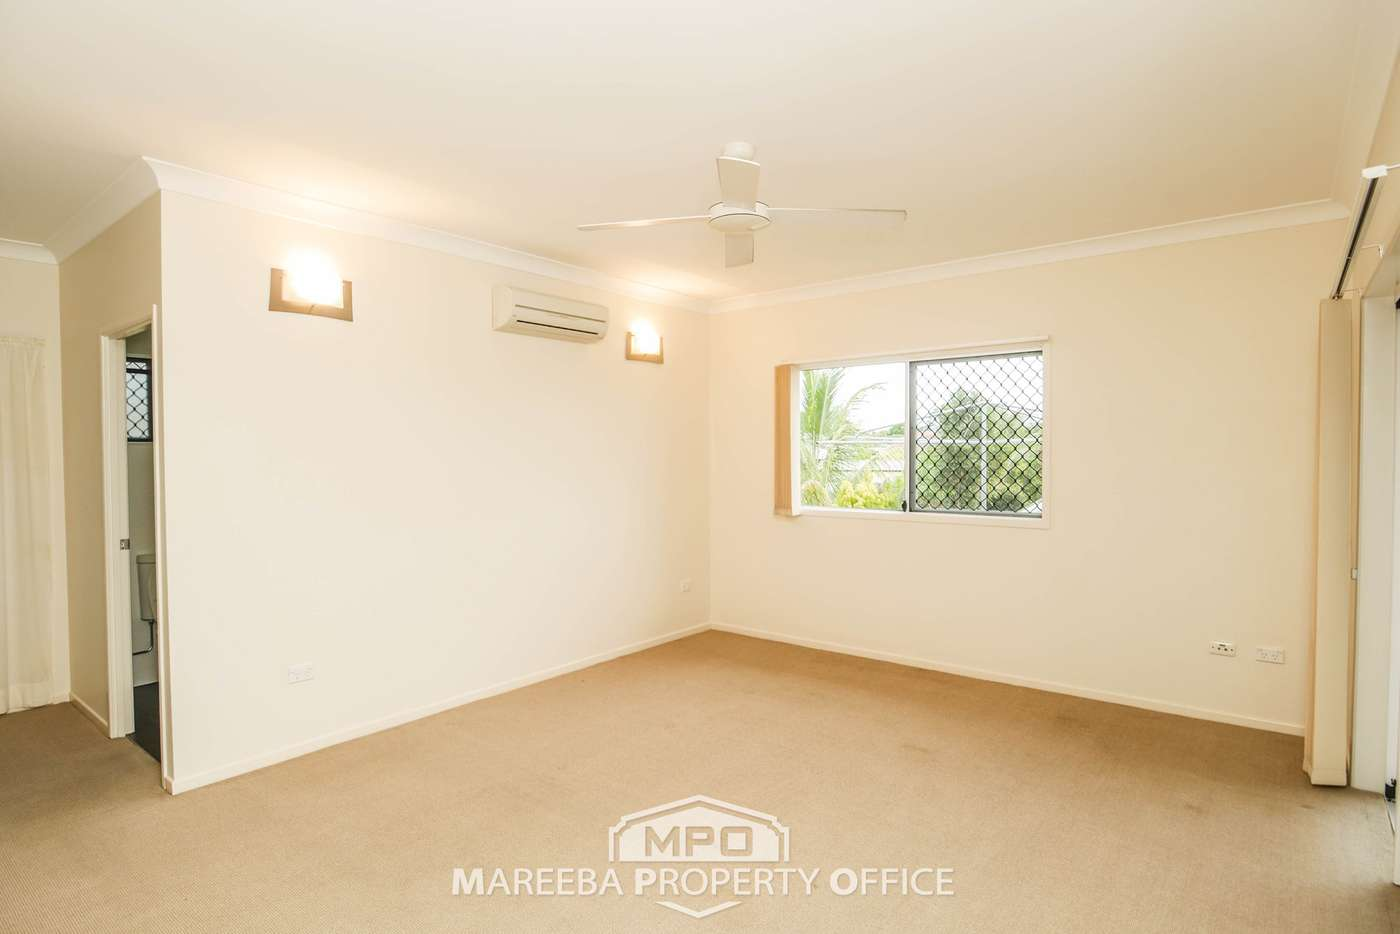 Seventh view of Homely house listing, 127 Hastie Road, Mareeba QLD 4880